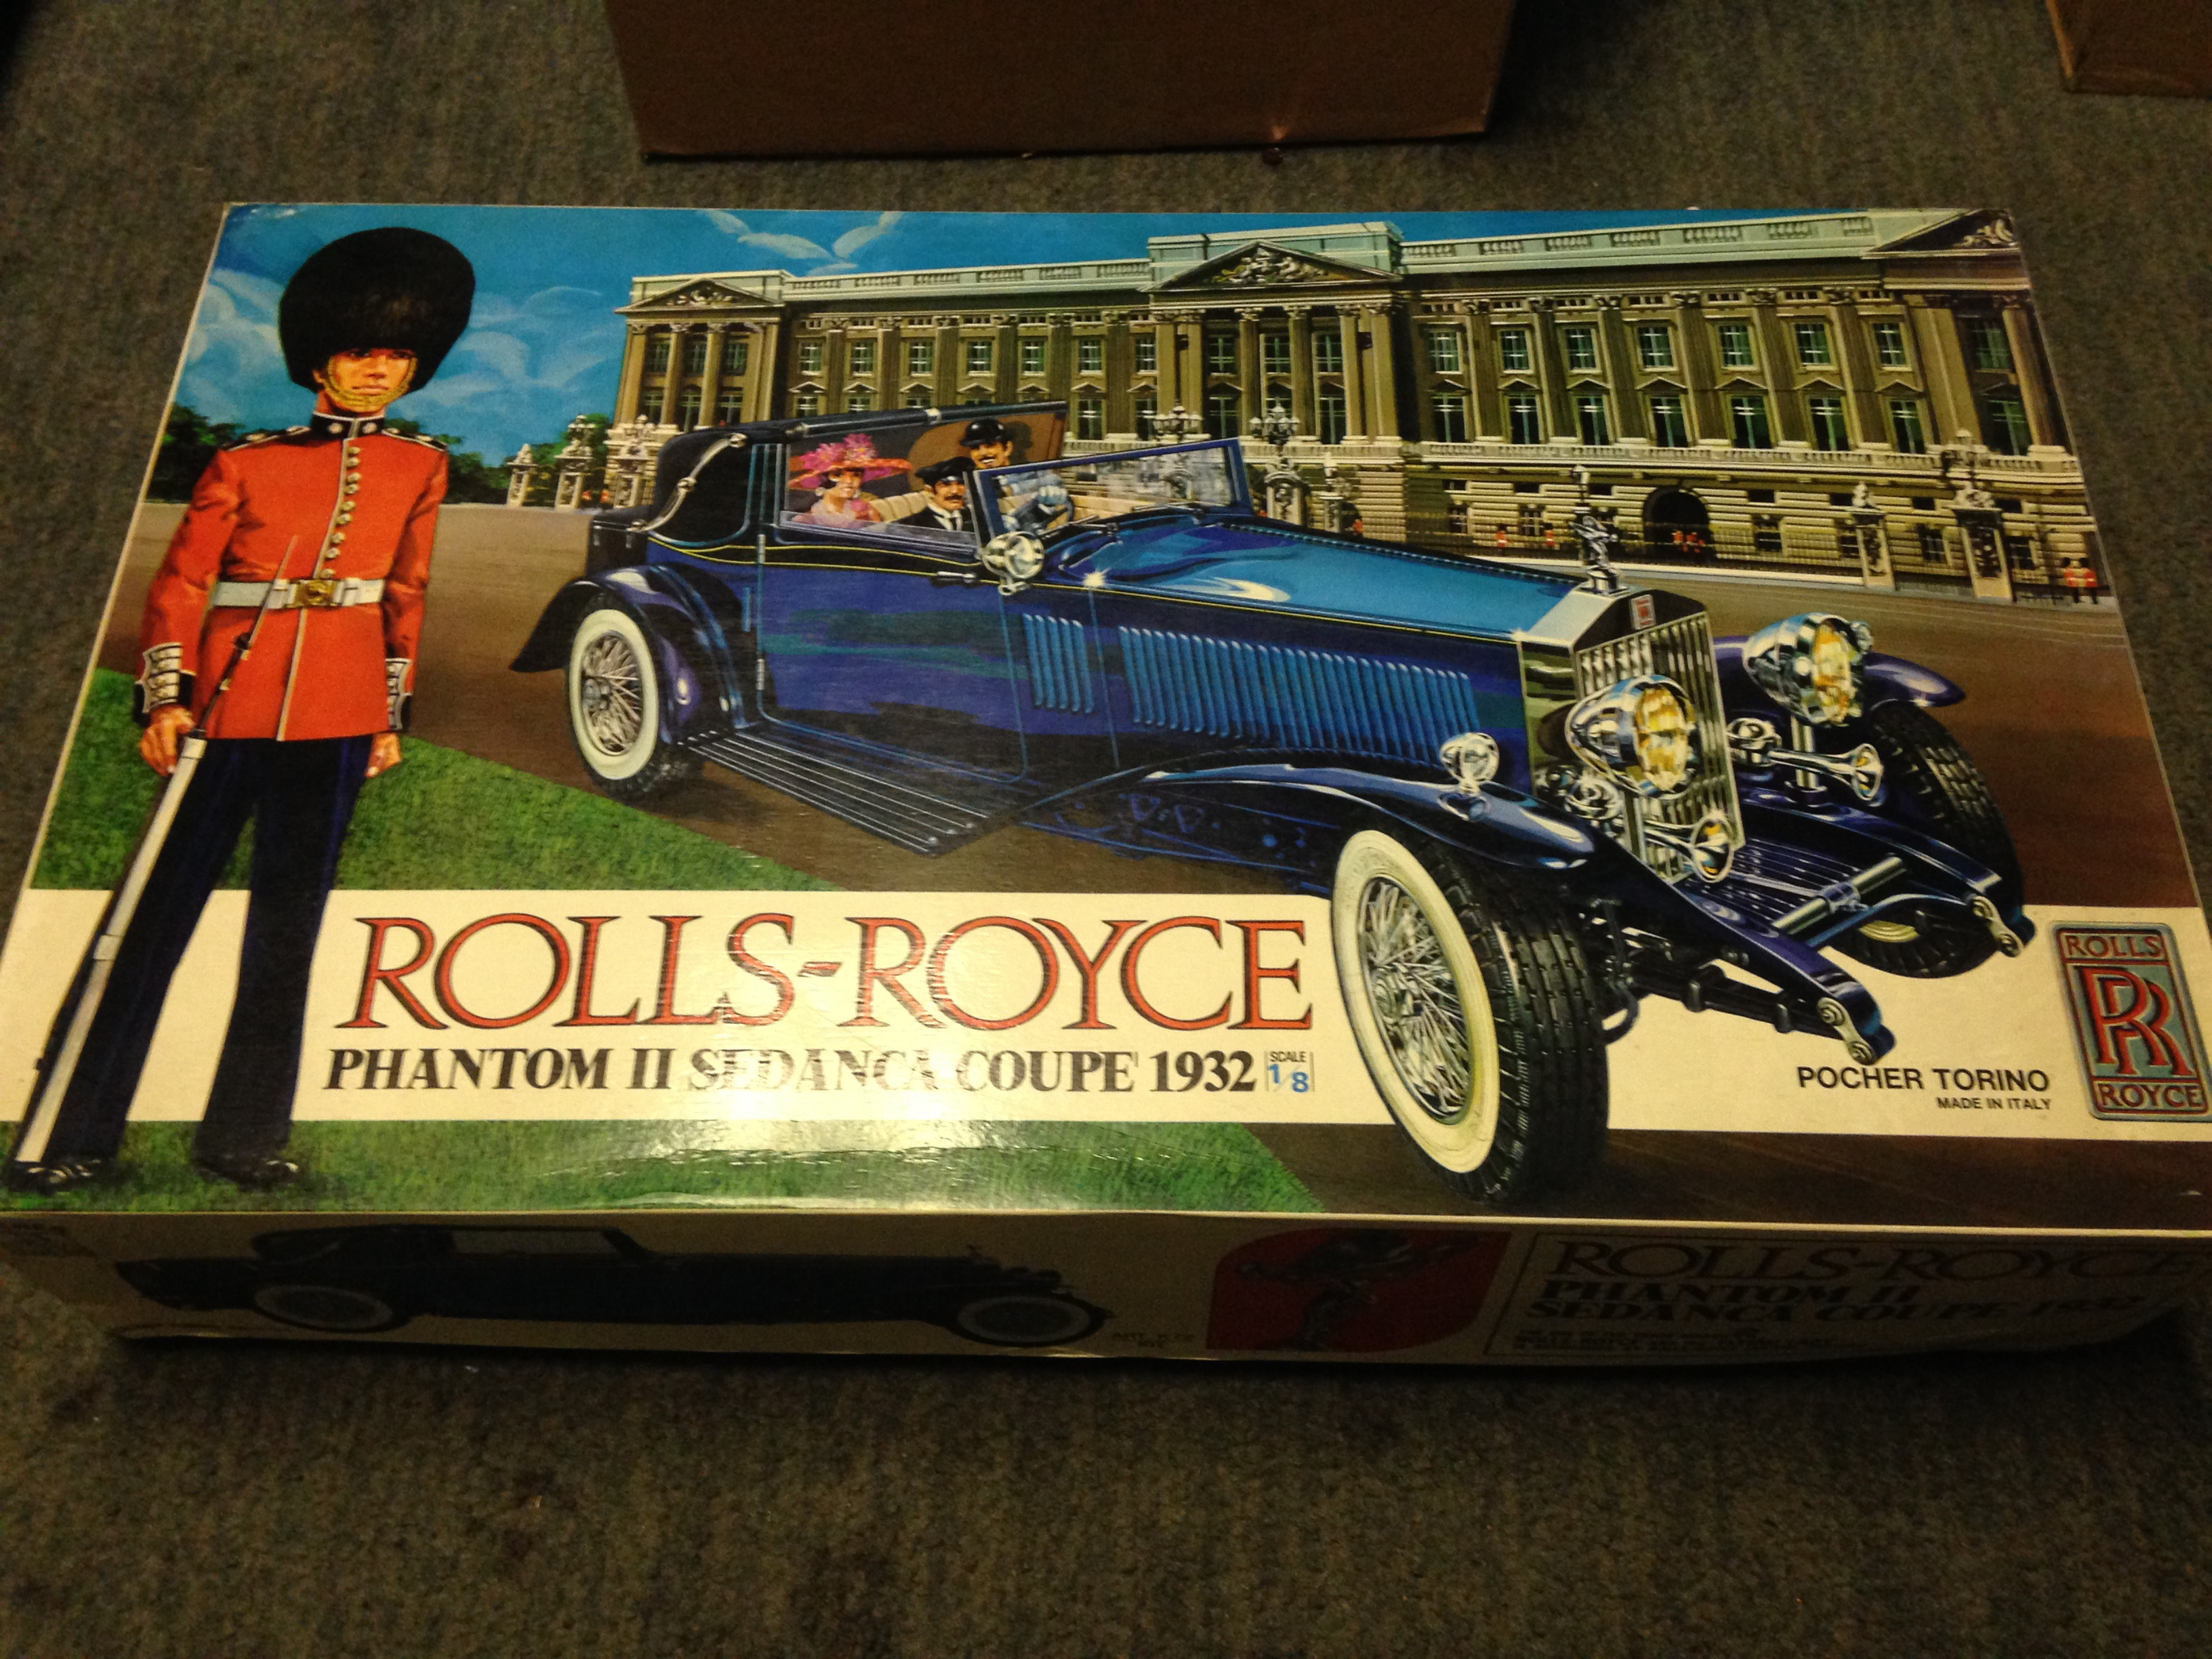 Rolls royce model photo - 10